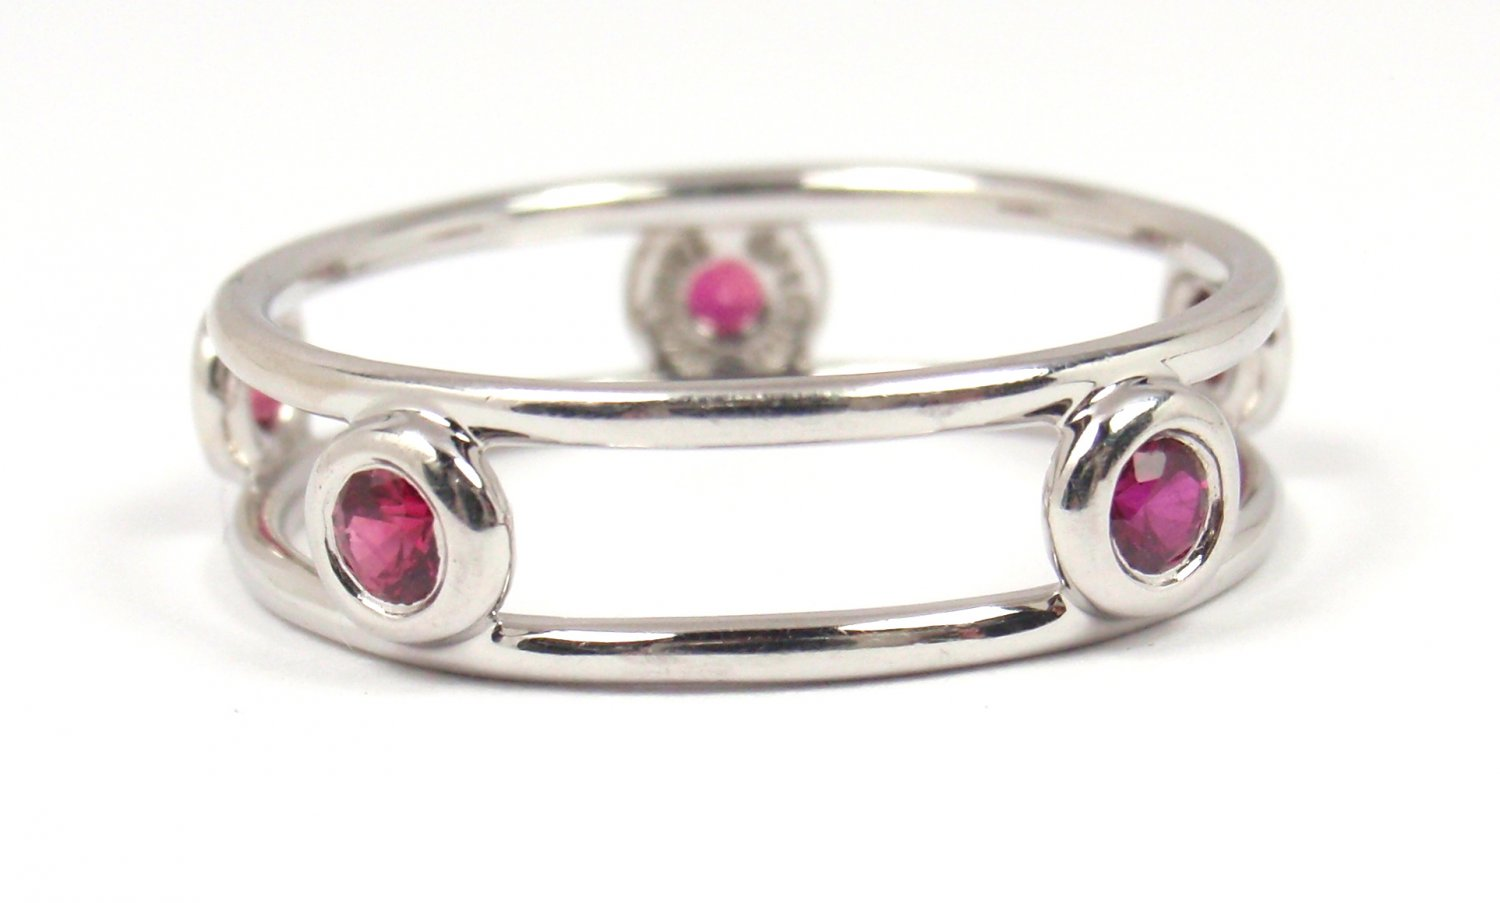 Tiffany & Co Peretti Platinum 950 Color By the Yard Double Wire Ruby Ring Size 8-1/4